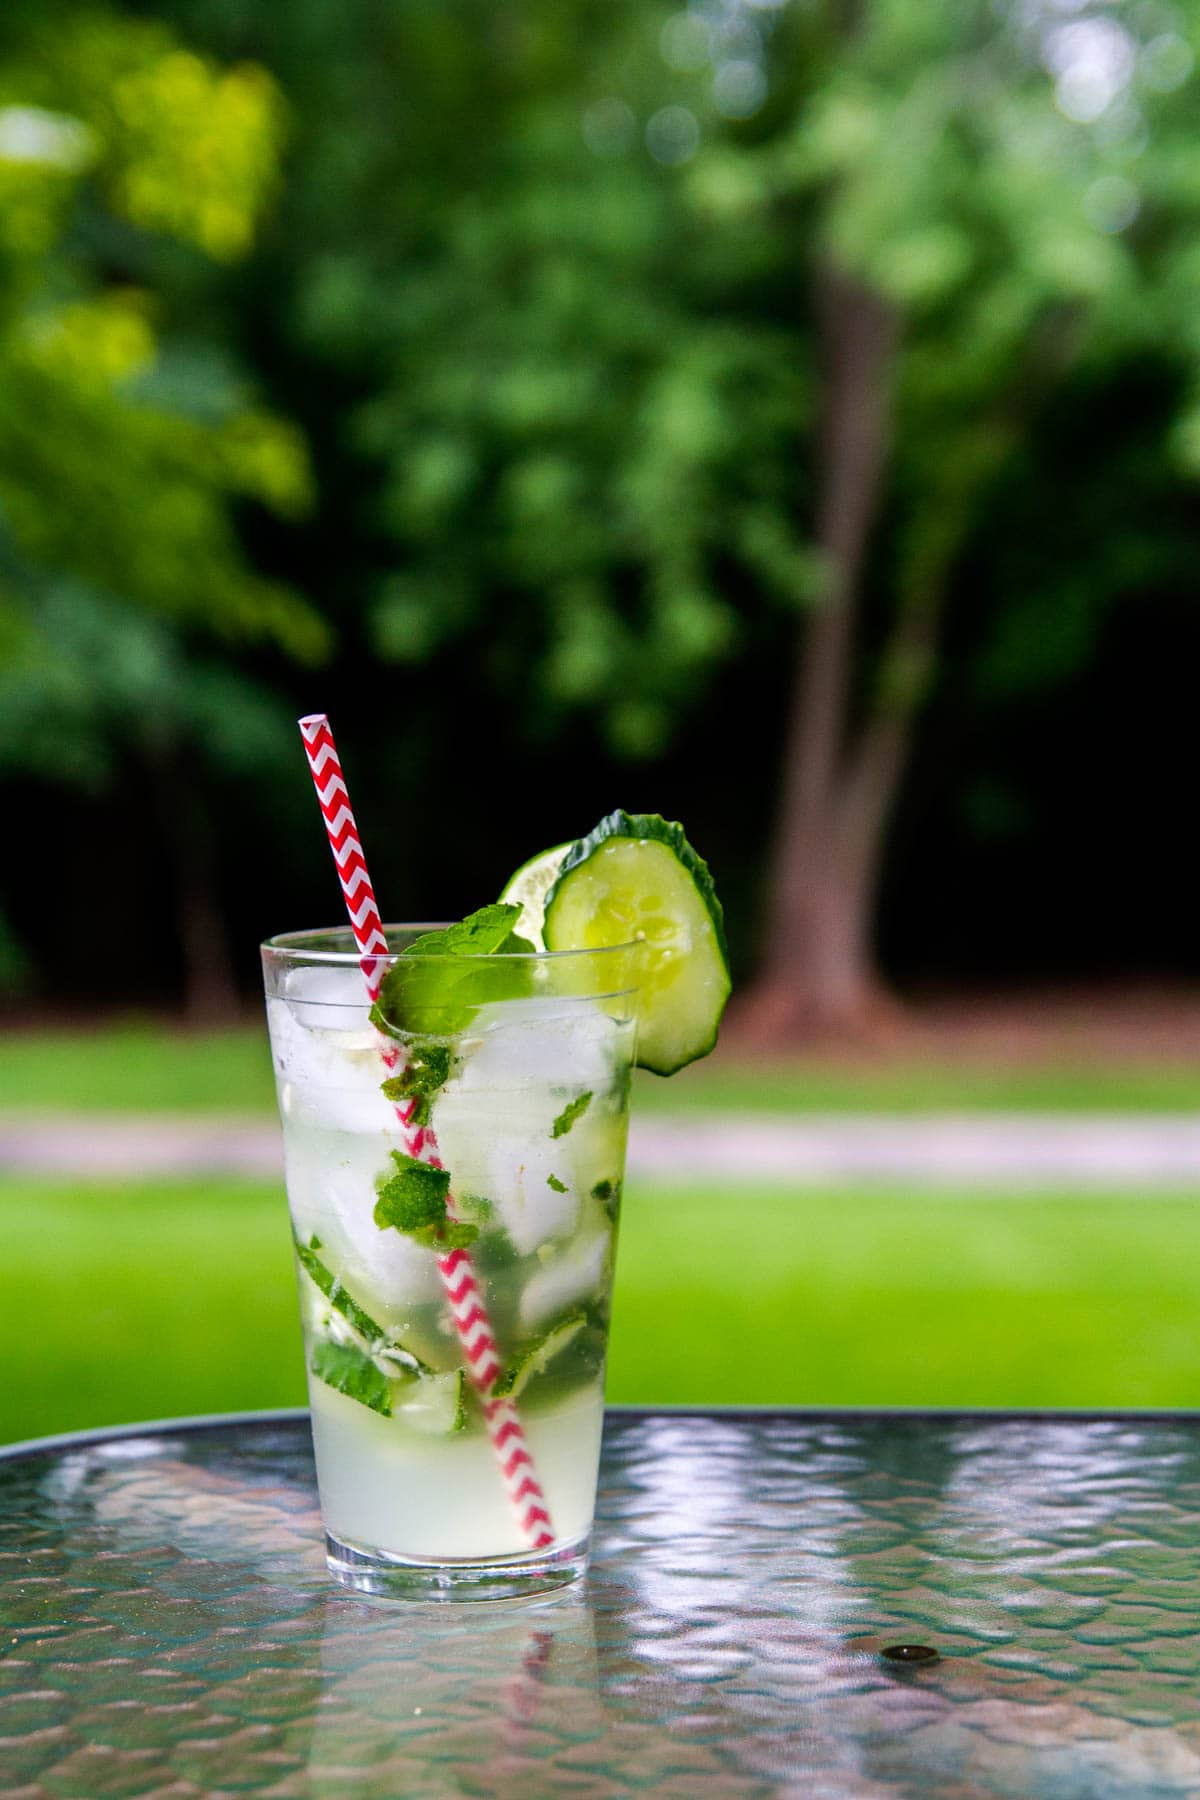 Cucumber mojito with homemade cucumber vodka